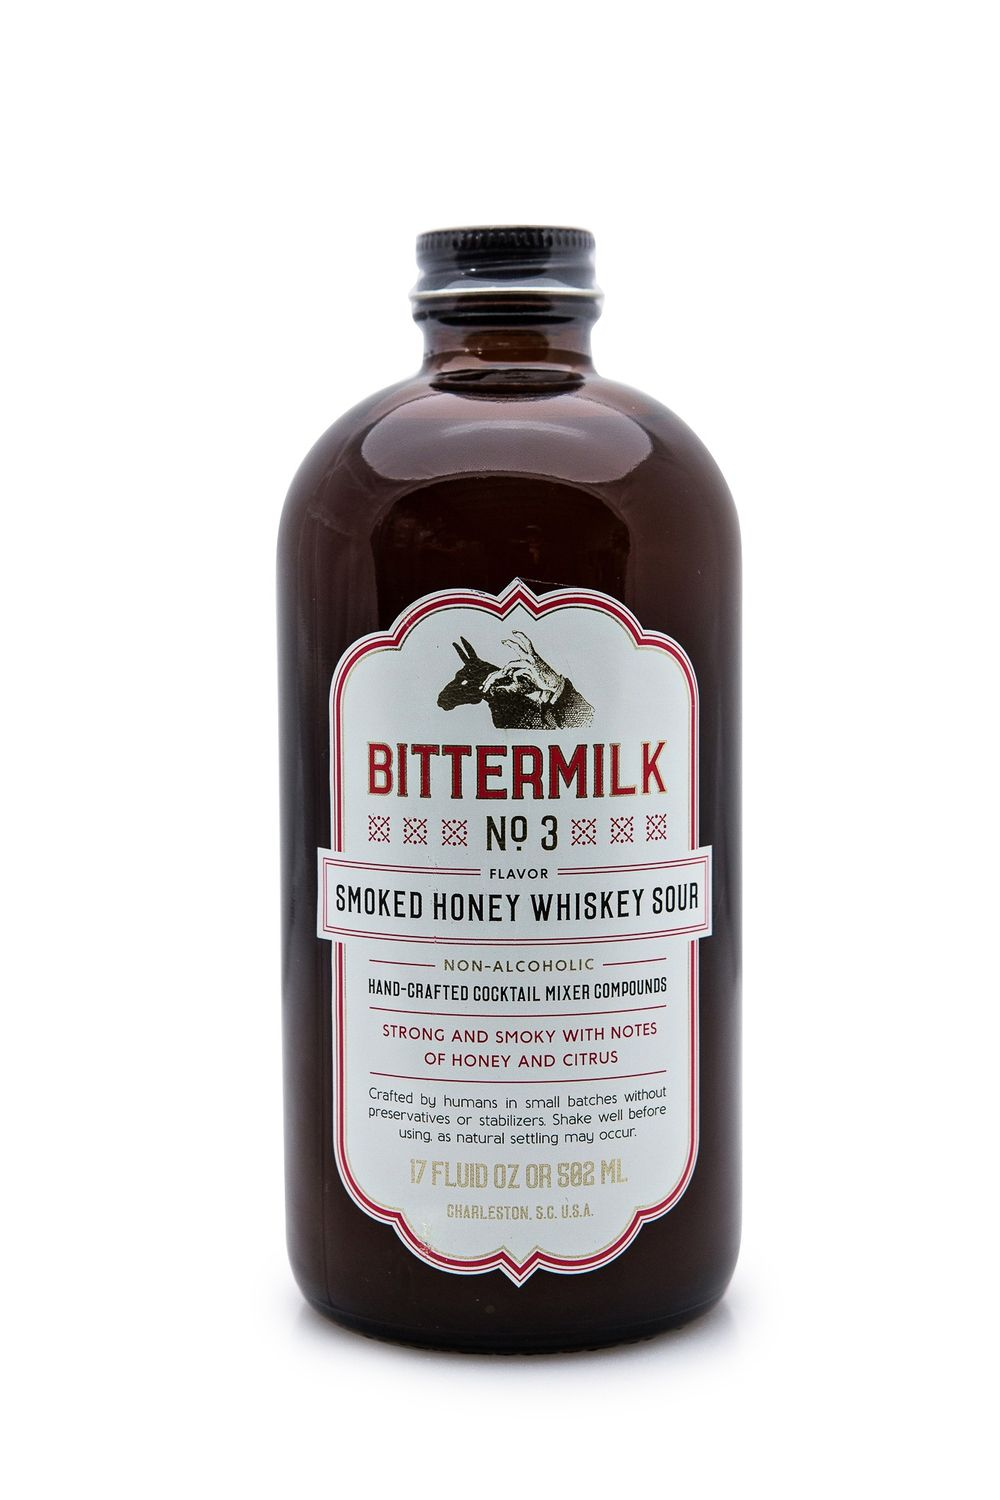 Bittermilk No. 3 Smoked Honey Whiskey